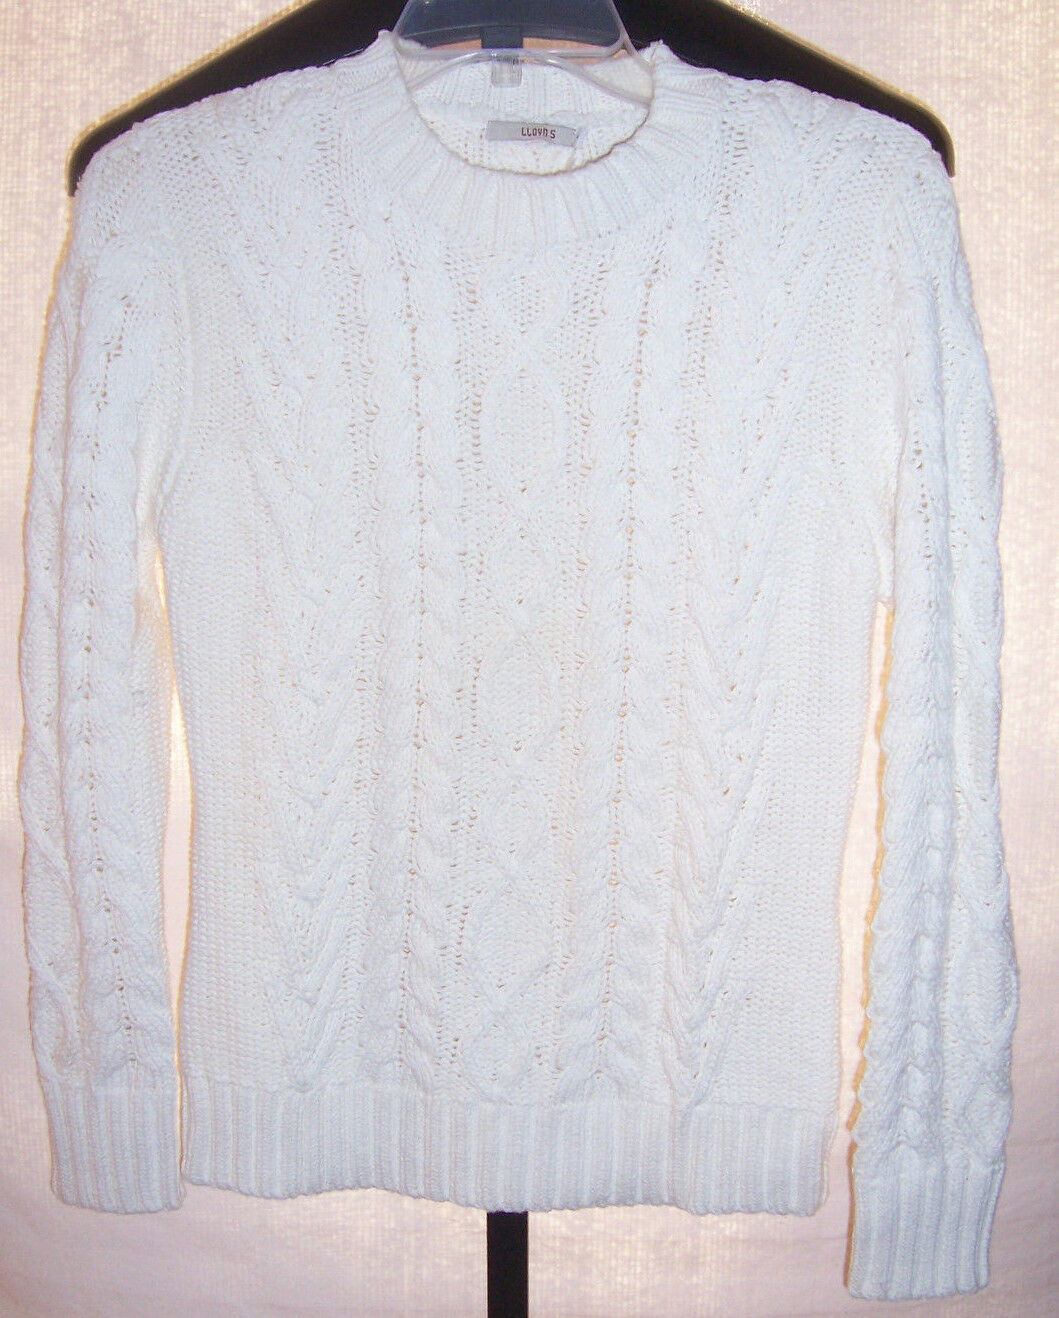 NWT Lloyds White Heavy Cable Knit Cotton Sweater Misses Misses Misses 6 (Eu 38) Made in Spain 6601b3